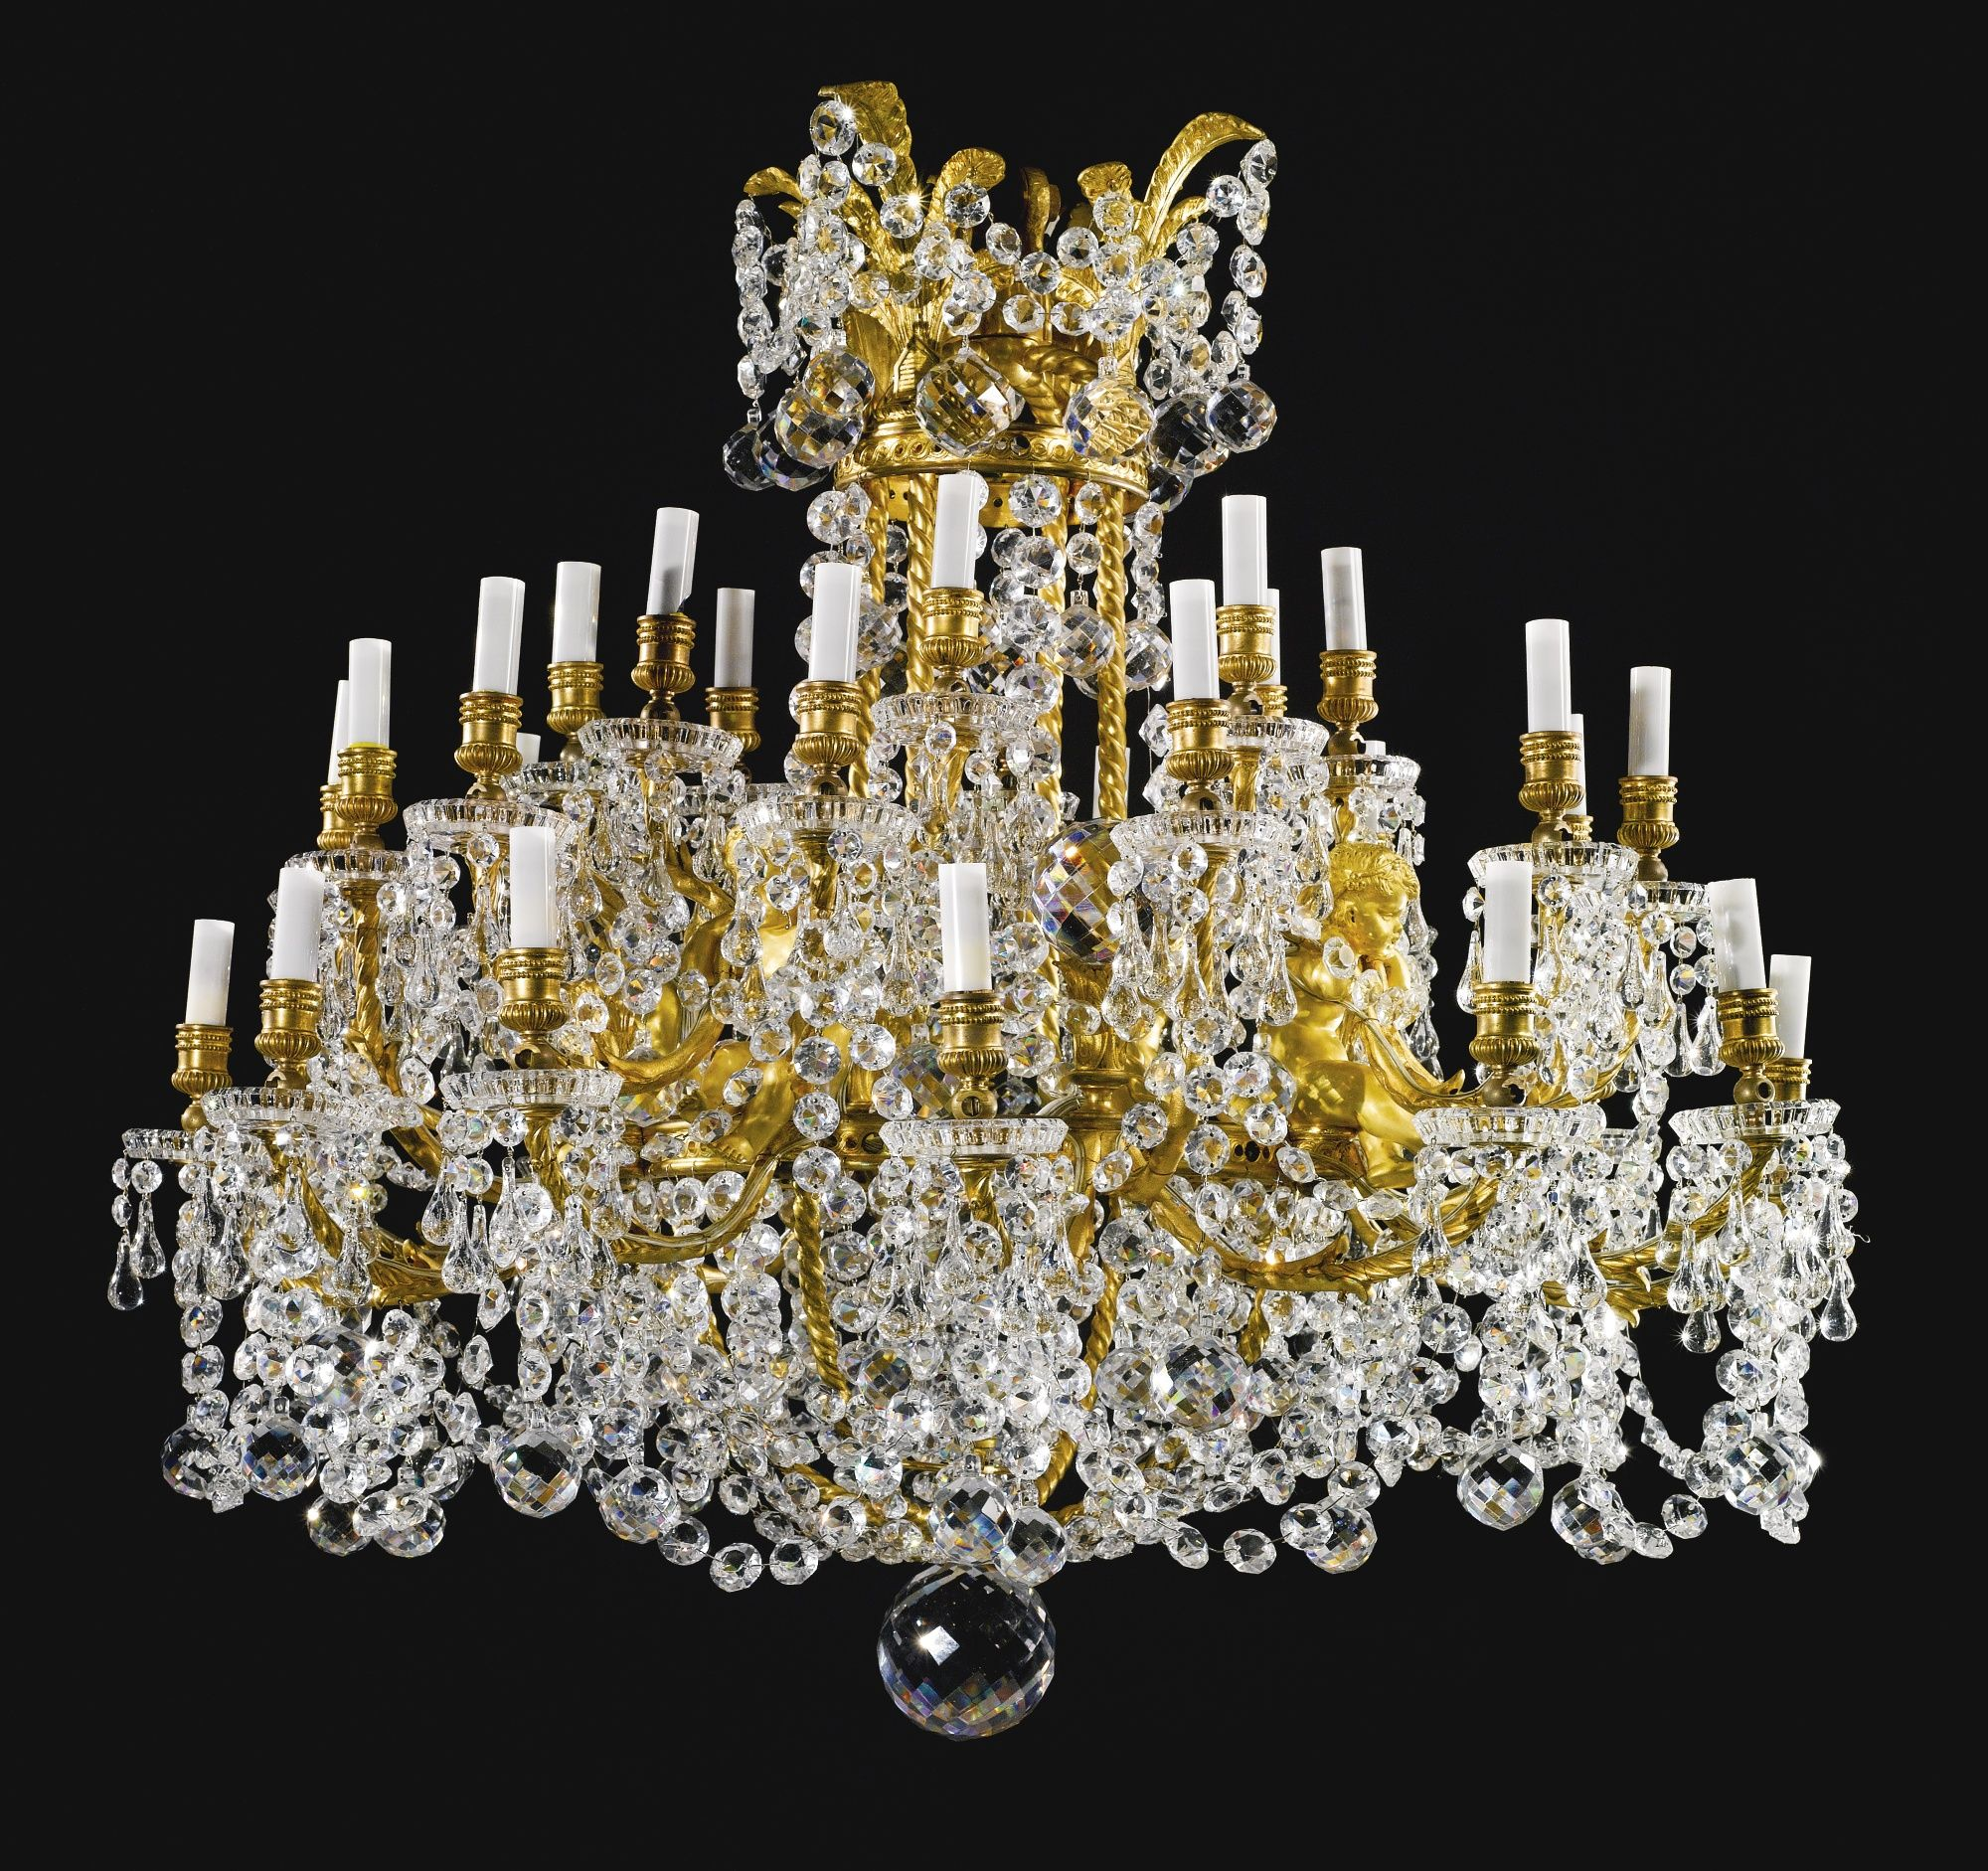 CRISTALLERIES DE BACCARAT A LARGE GILT BRONZE, CUT CRYSTAL AND MOLDED GLASS THIRTY-THREE LIGHT CHANDELIER BACCARAT, FRANCE, SECOND HALF 19TH CENTURY